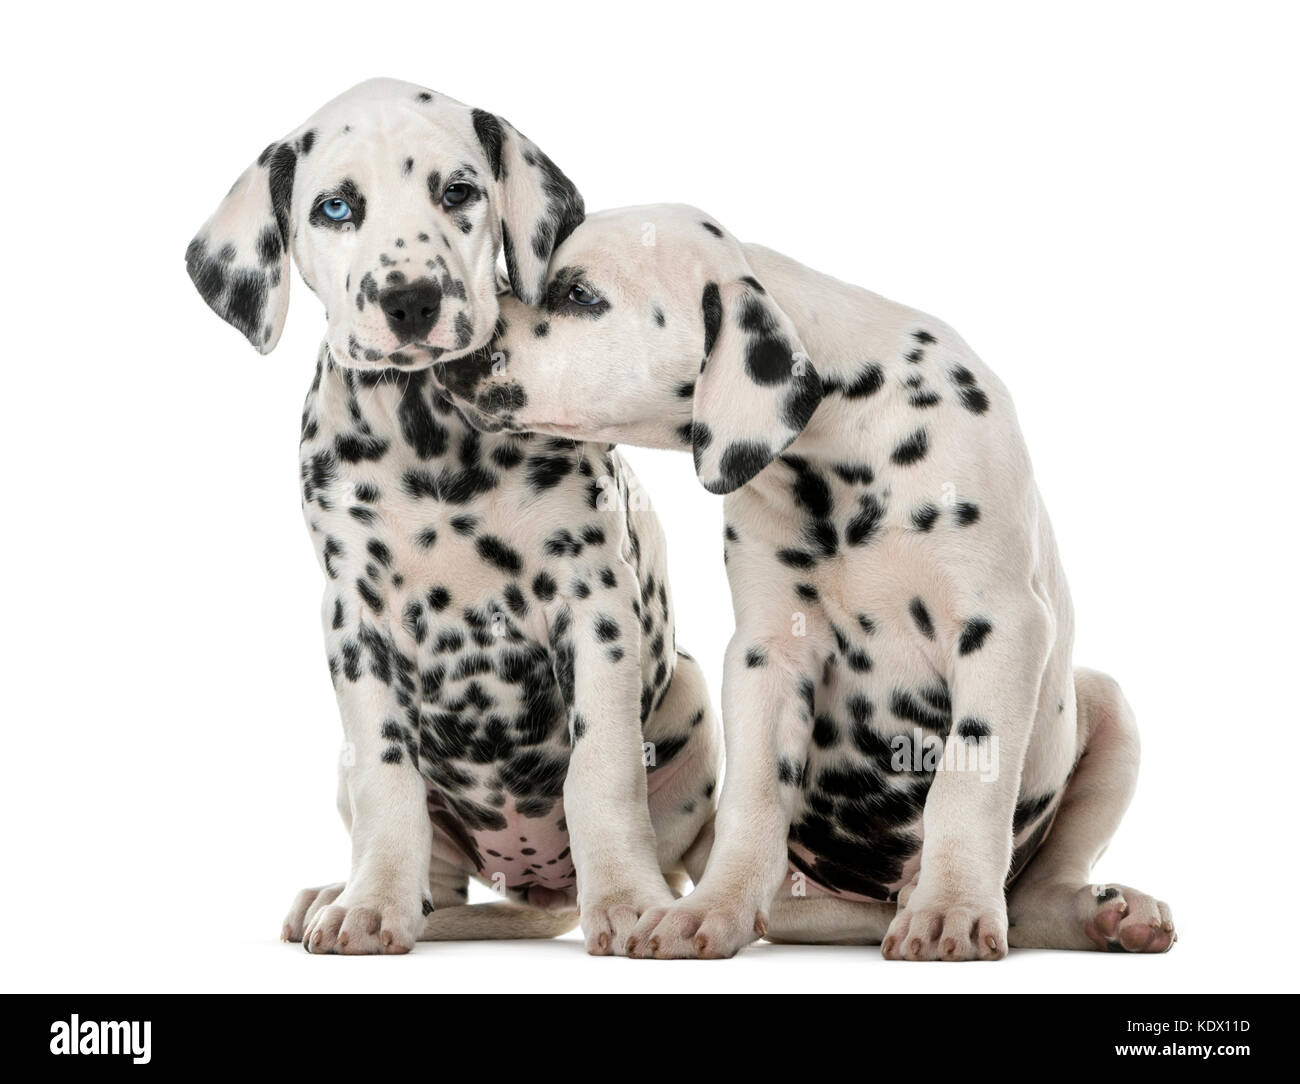 Two Dalmatian puppies cuddling in front of a white background - Stock Image